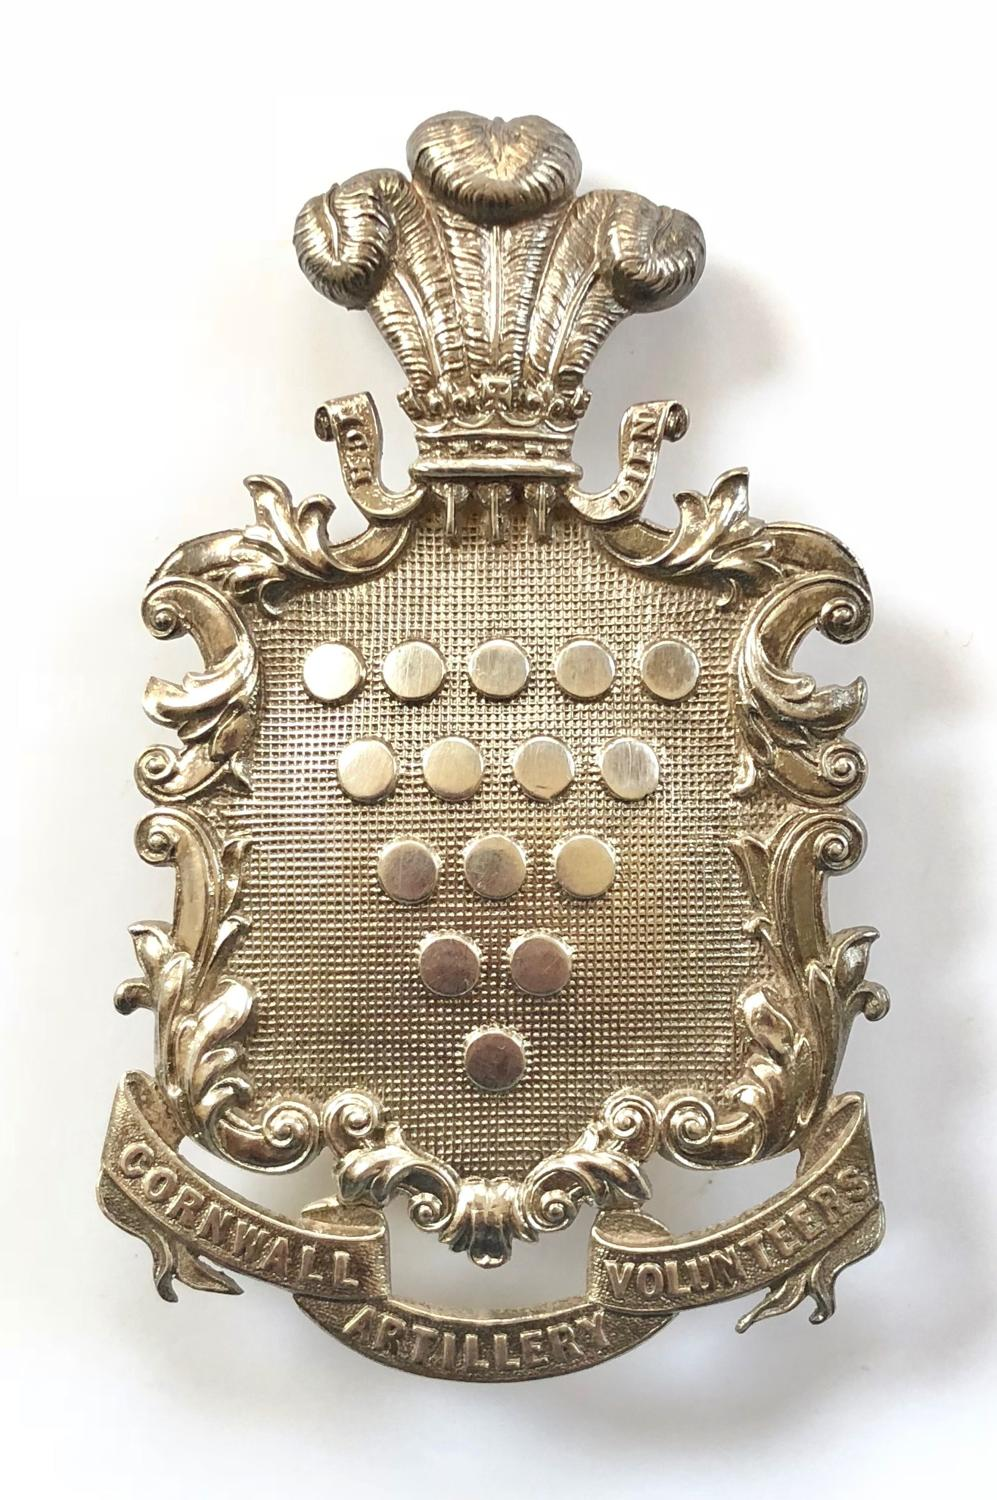 Cornwall Artillery Volunteers Officer's pouch belt plate circa 1861-